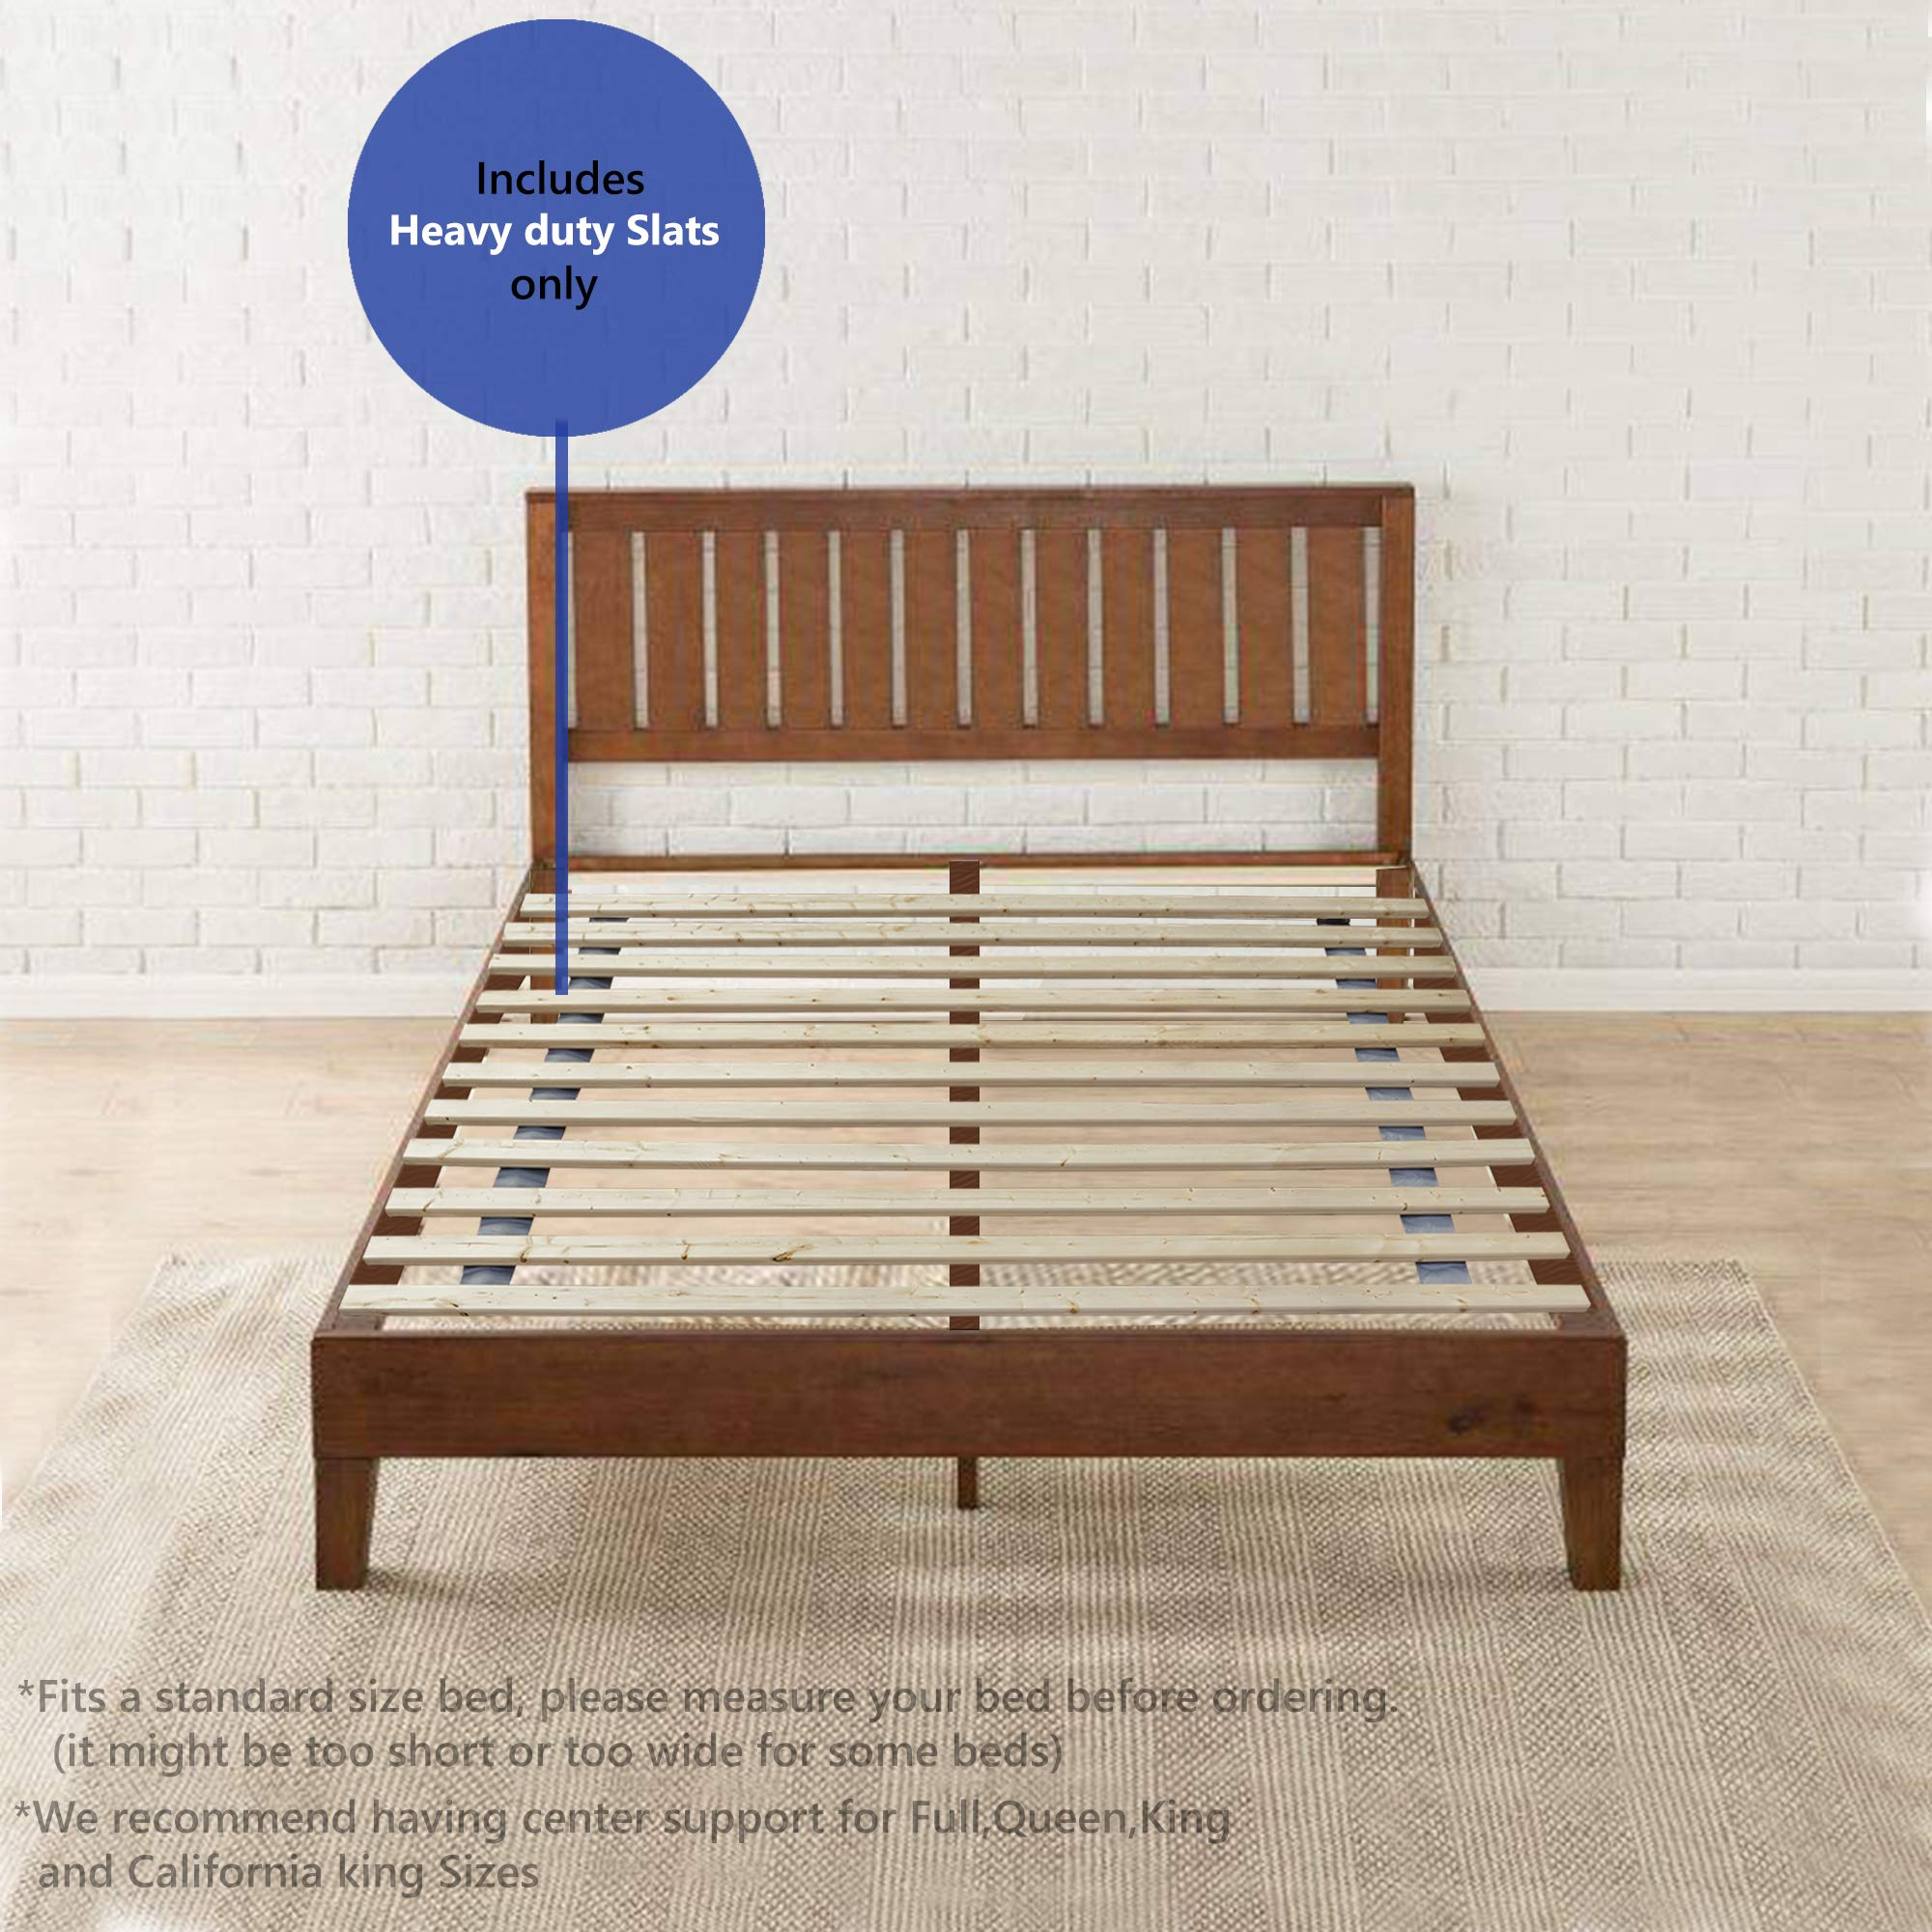 Spring Solution, Heavy Duty Mattress Support Wooden Bunkie Board / Slats, KingSize by Spring Solution